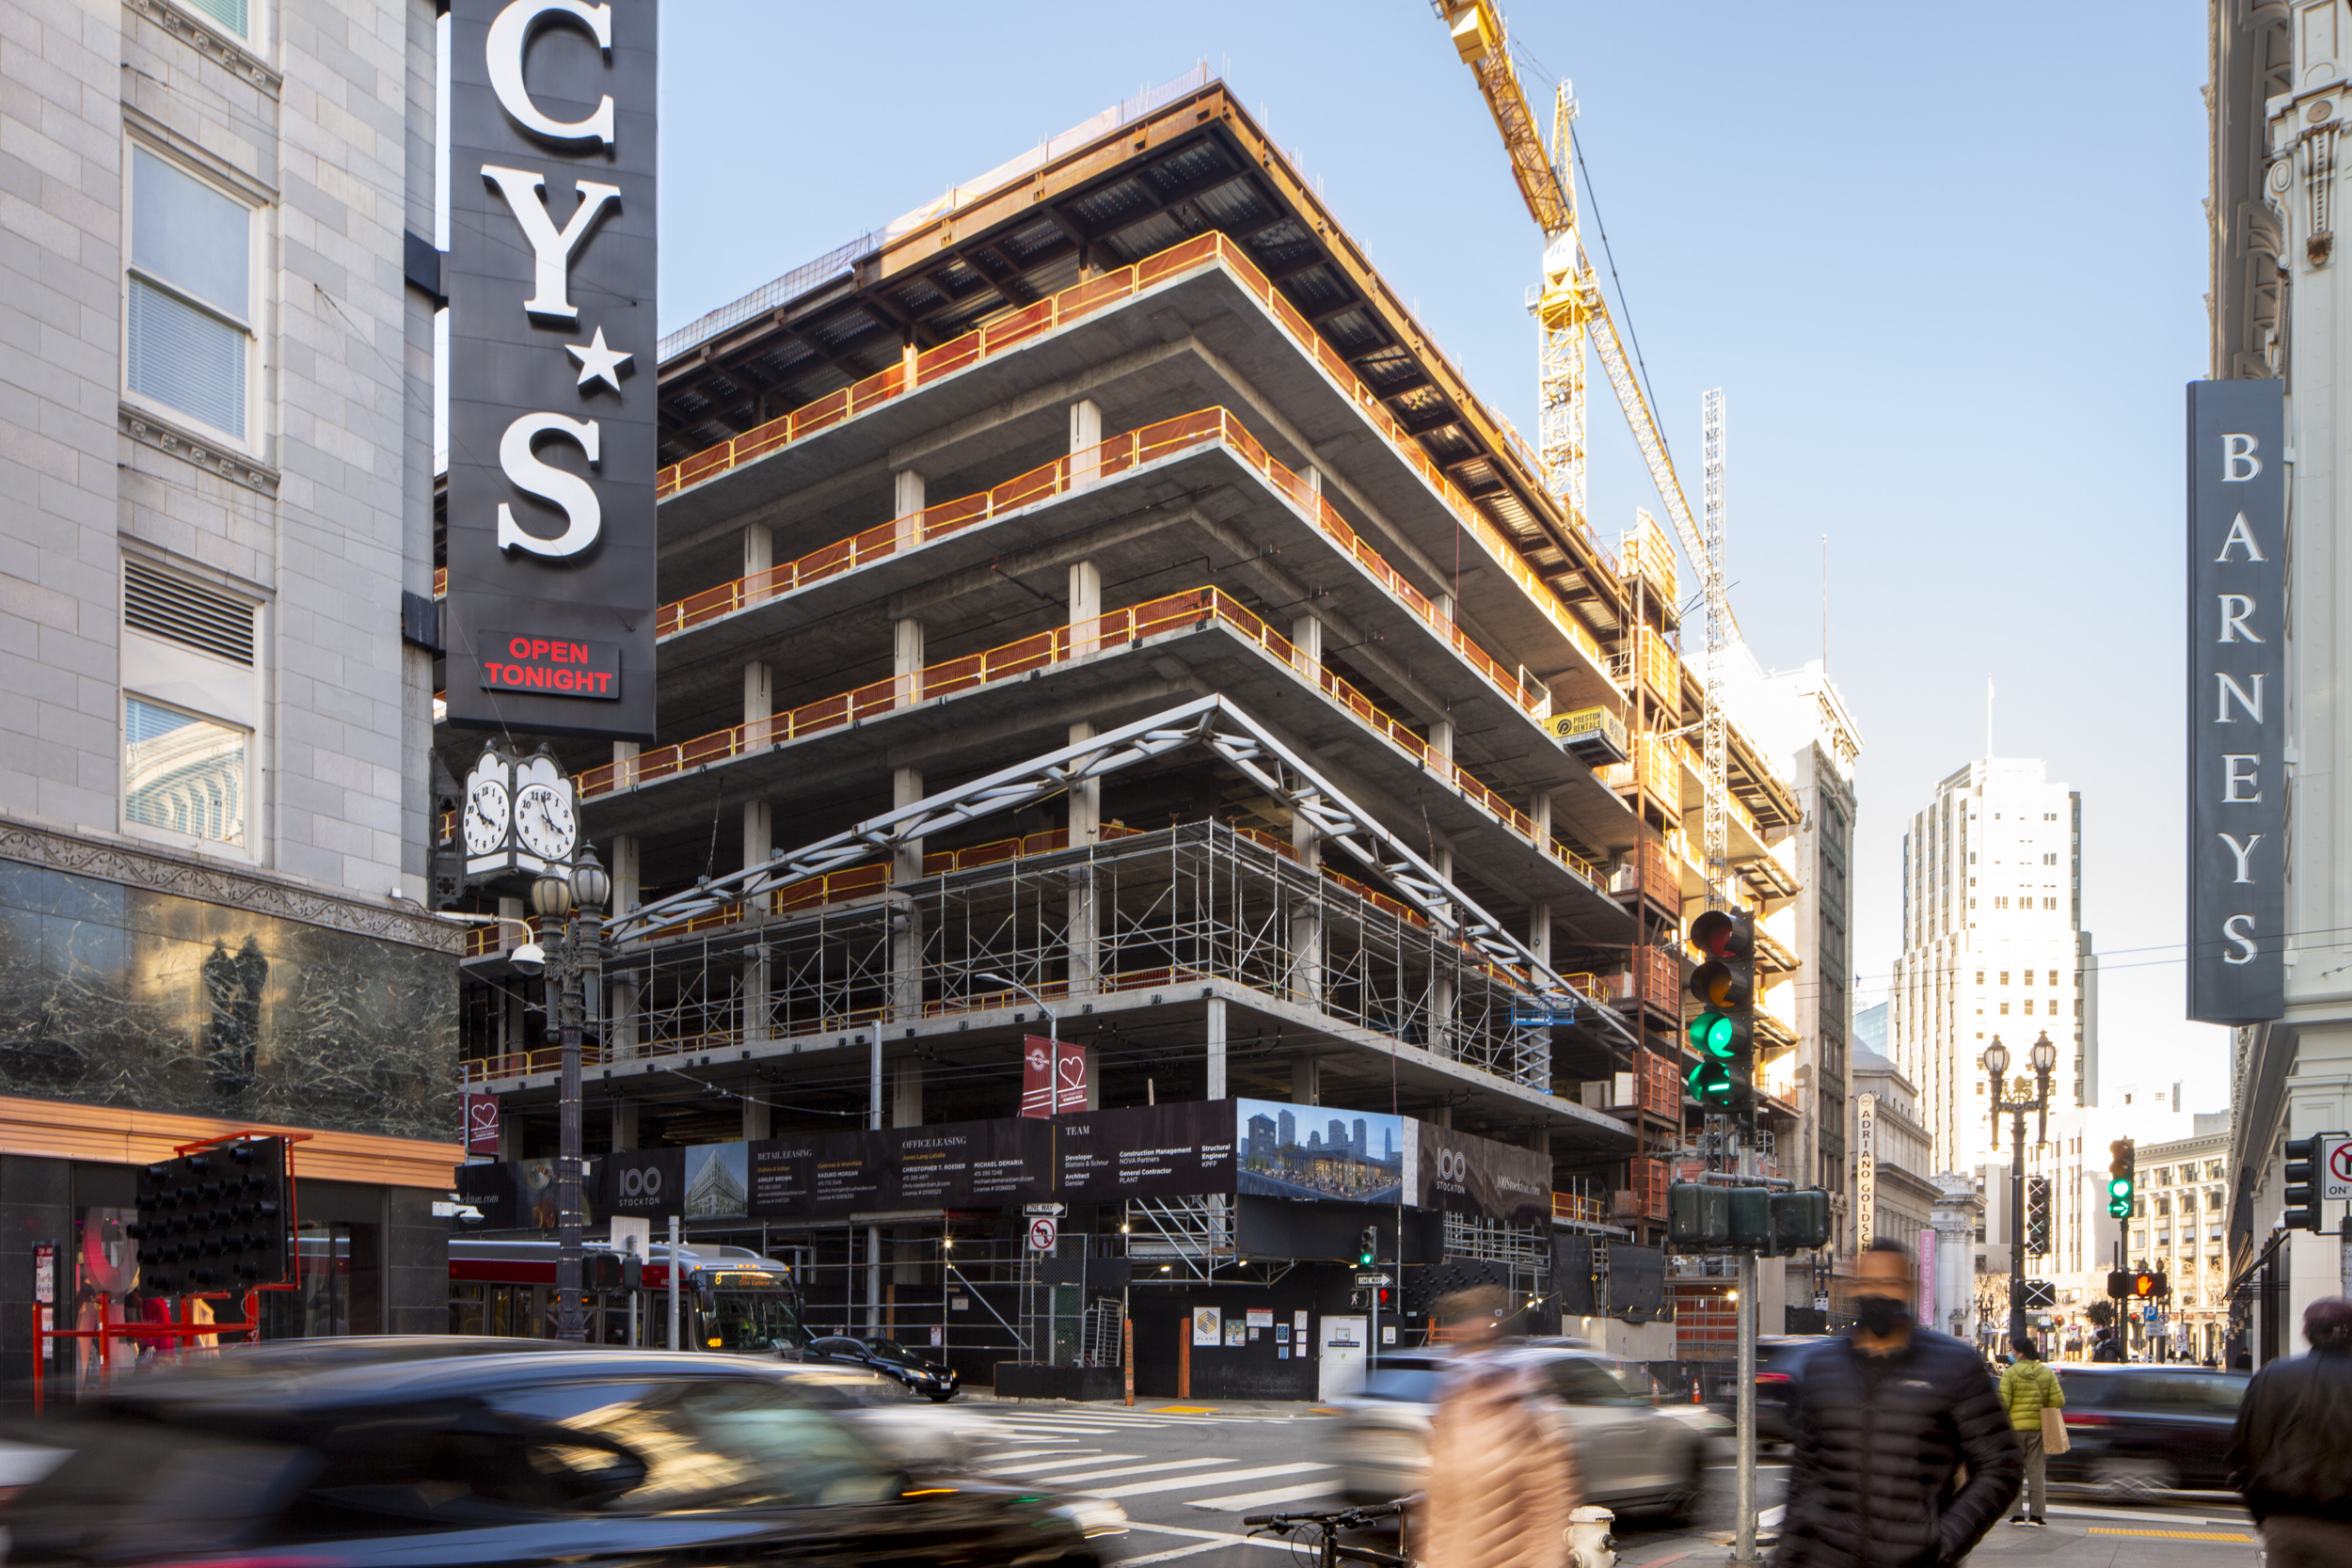 Construction update for 100 Stockton Street, image by Andrew Campbell Nelson